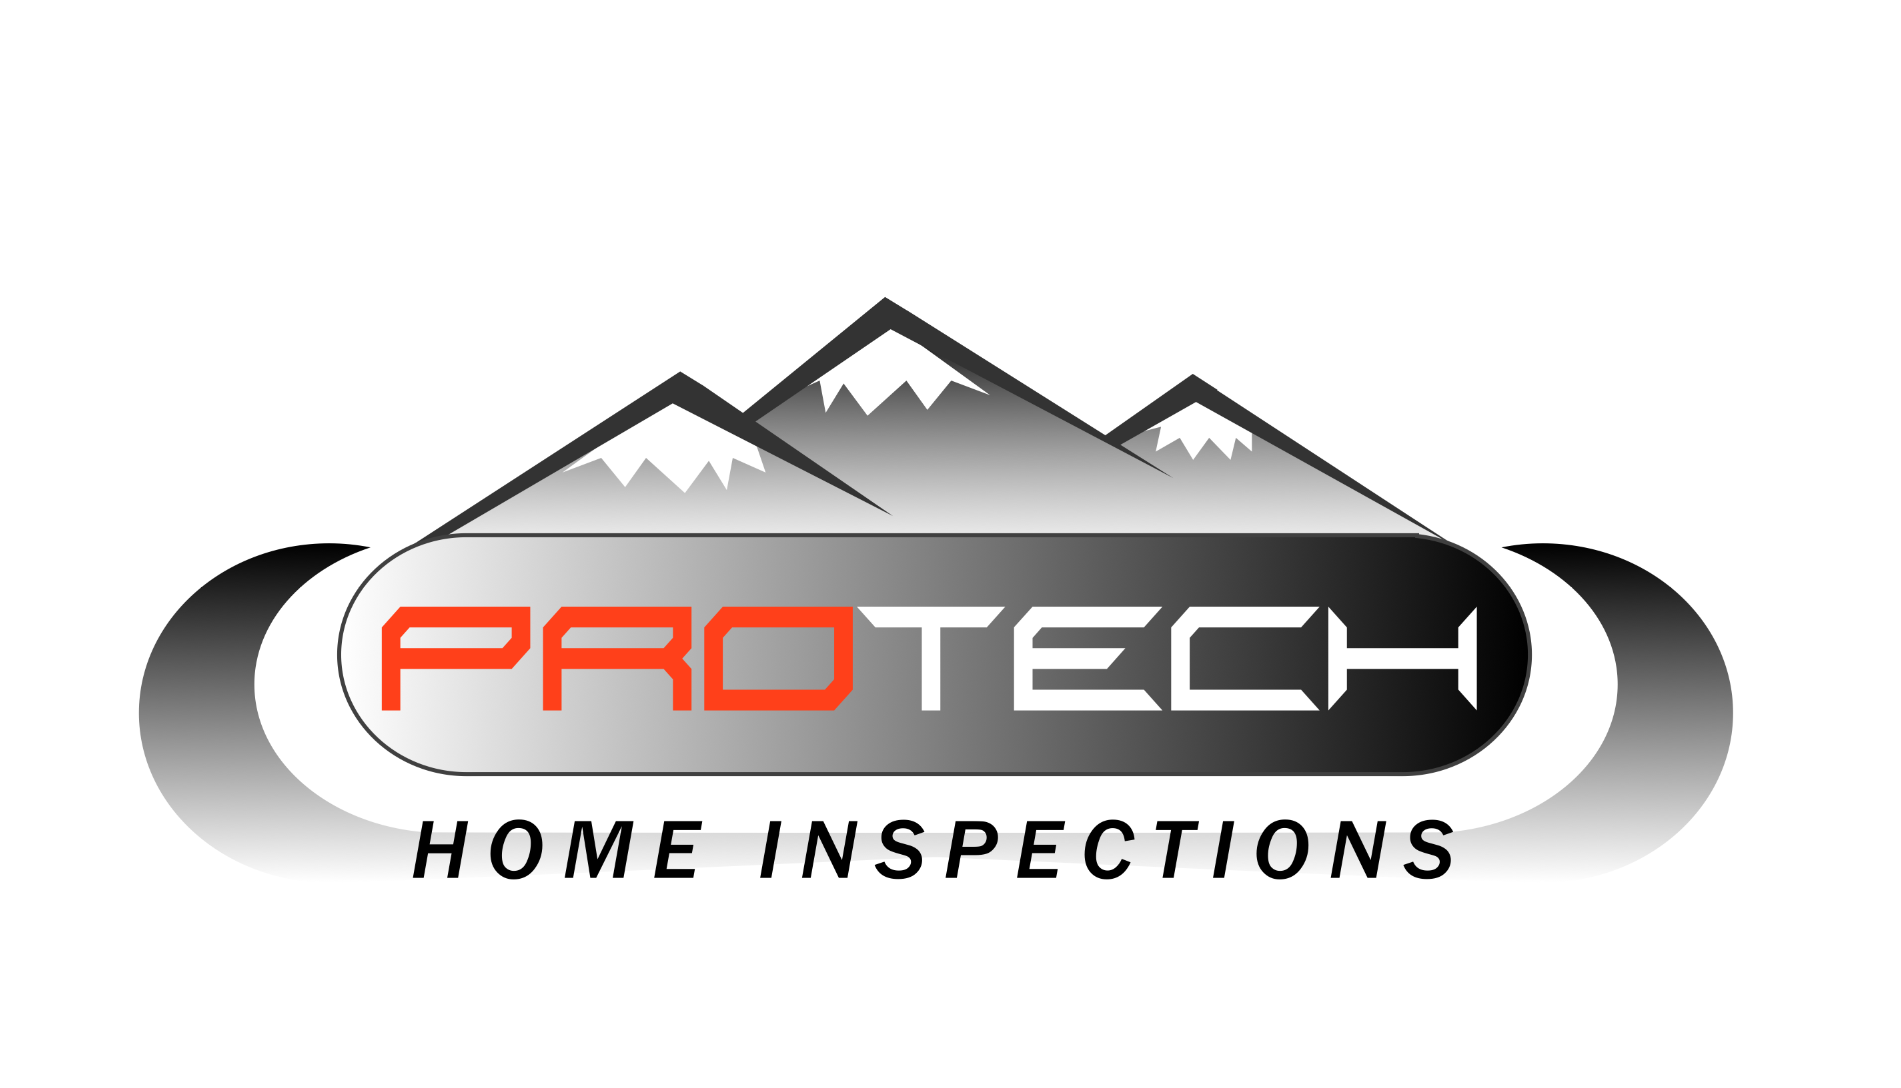 Pro Tech Home Inspections